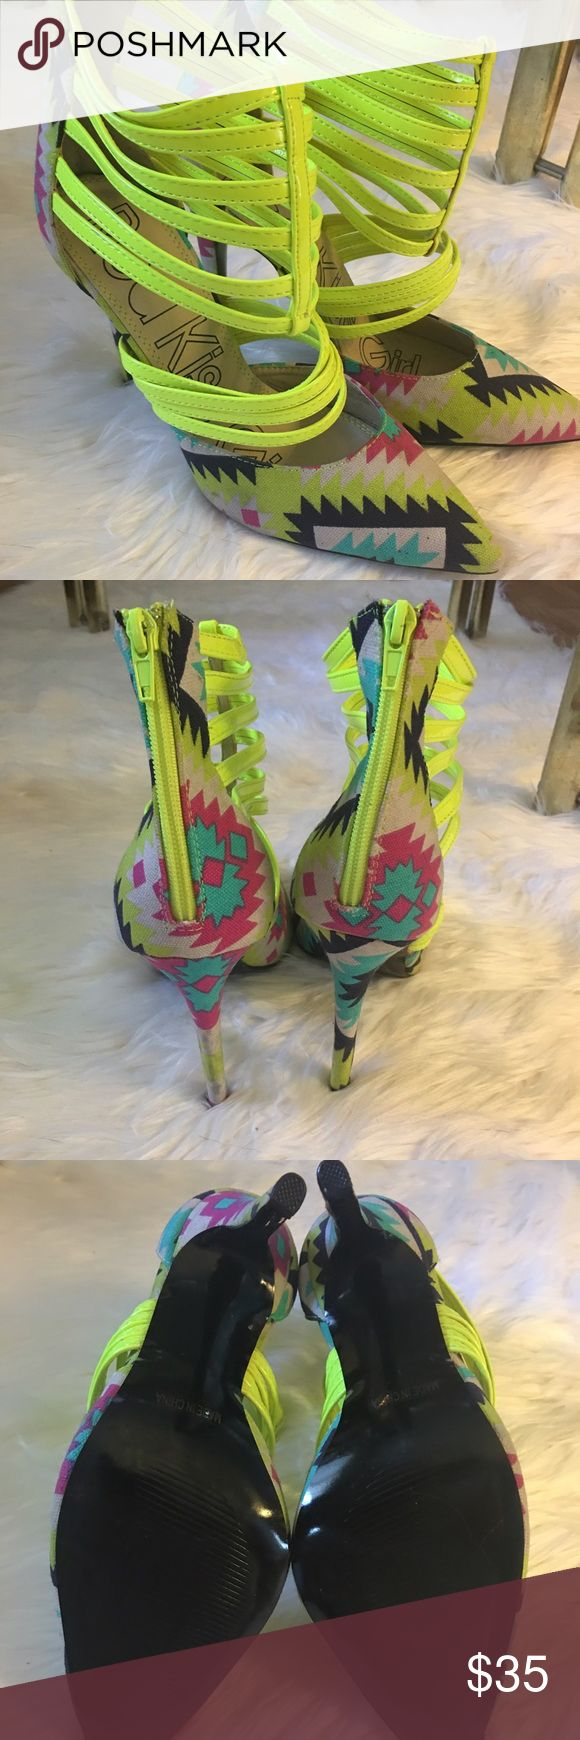 Aztec Print Caged D'Orsay High Heels 👠👗🌈 Brand new without box. Red Kiss Girl aztec print caged high heels. Neon yellow, pink, light blue and cream. Never worn. Size 10. No trades. Thanks for looking! Red Kiss Girl Shoes Heels